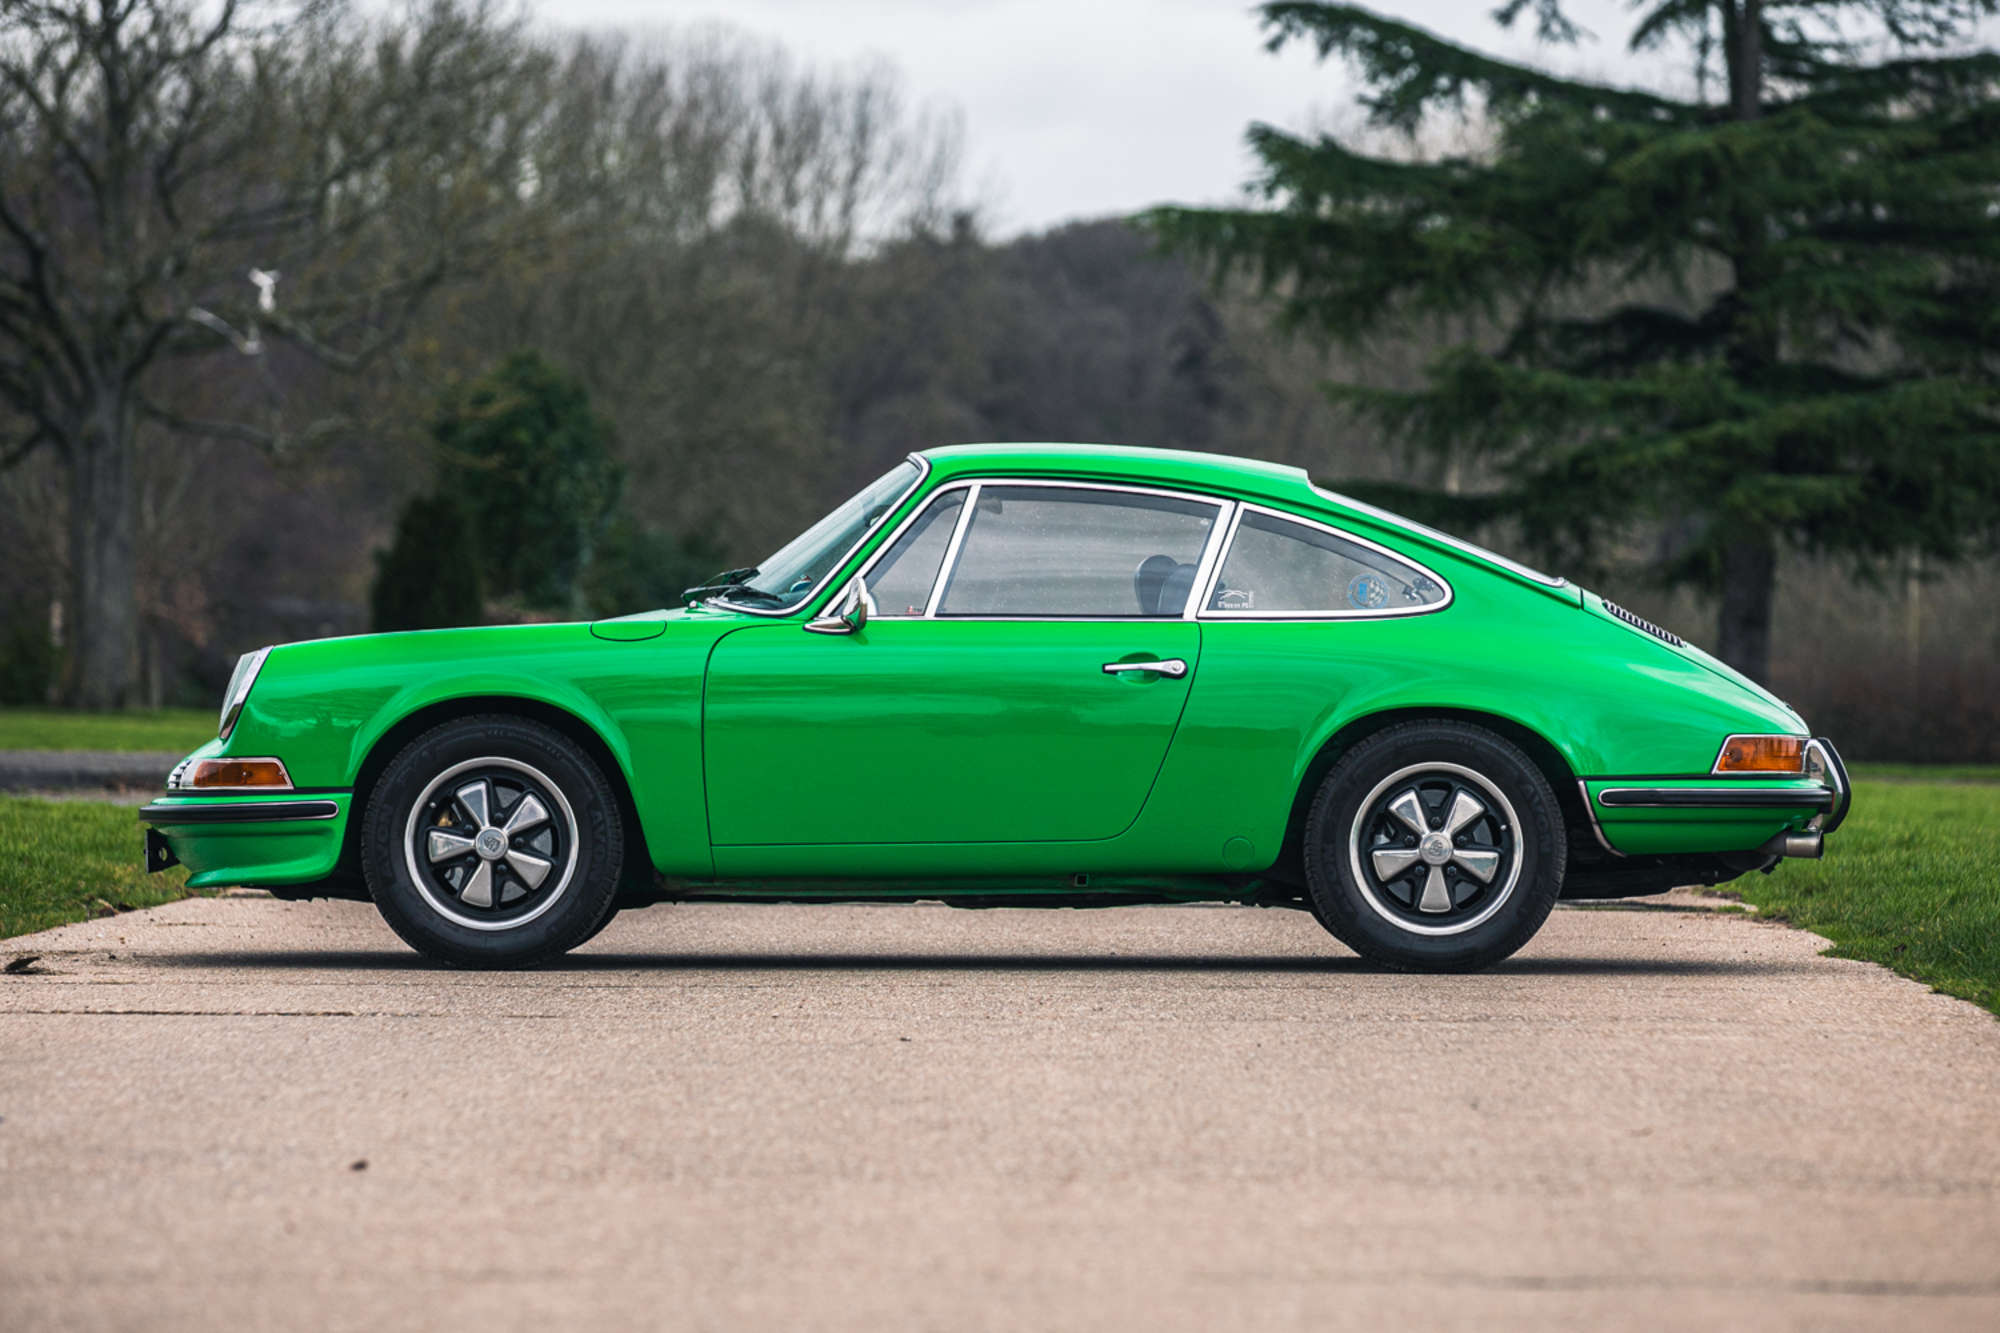 Opinion: Matching numbers aren't the be-all and end-all of buying a classic car